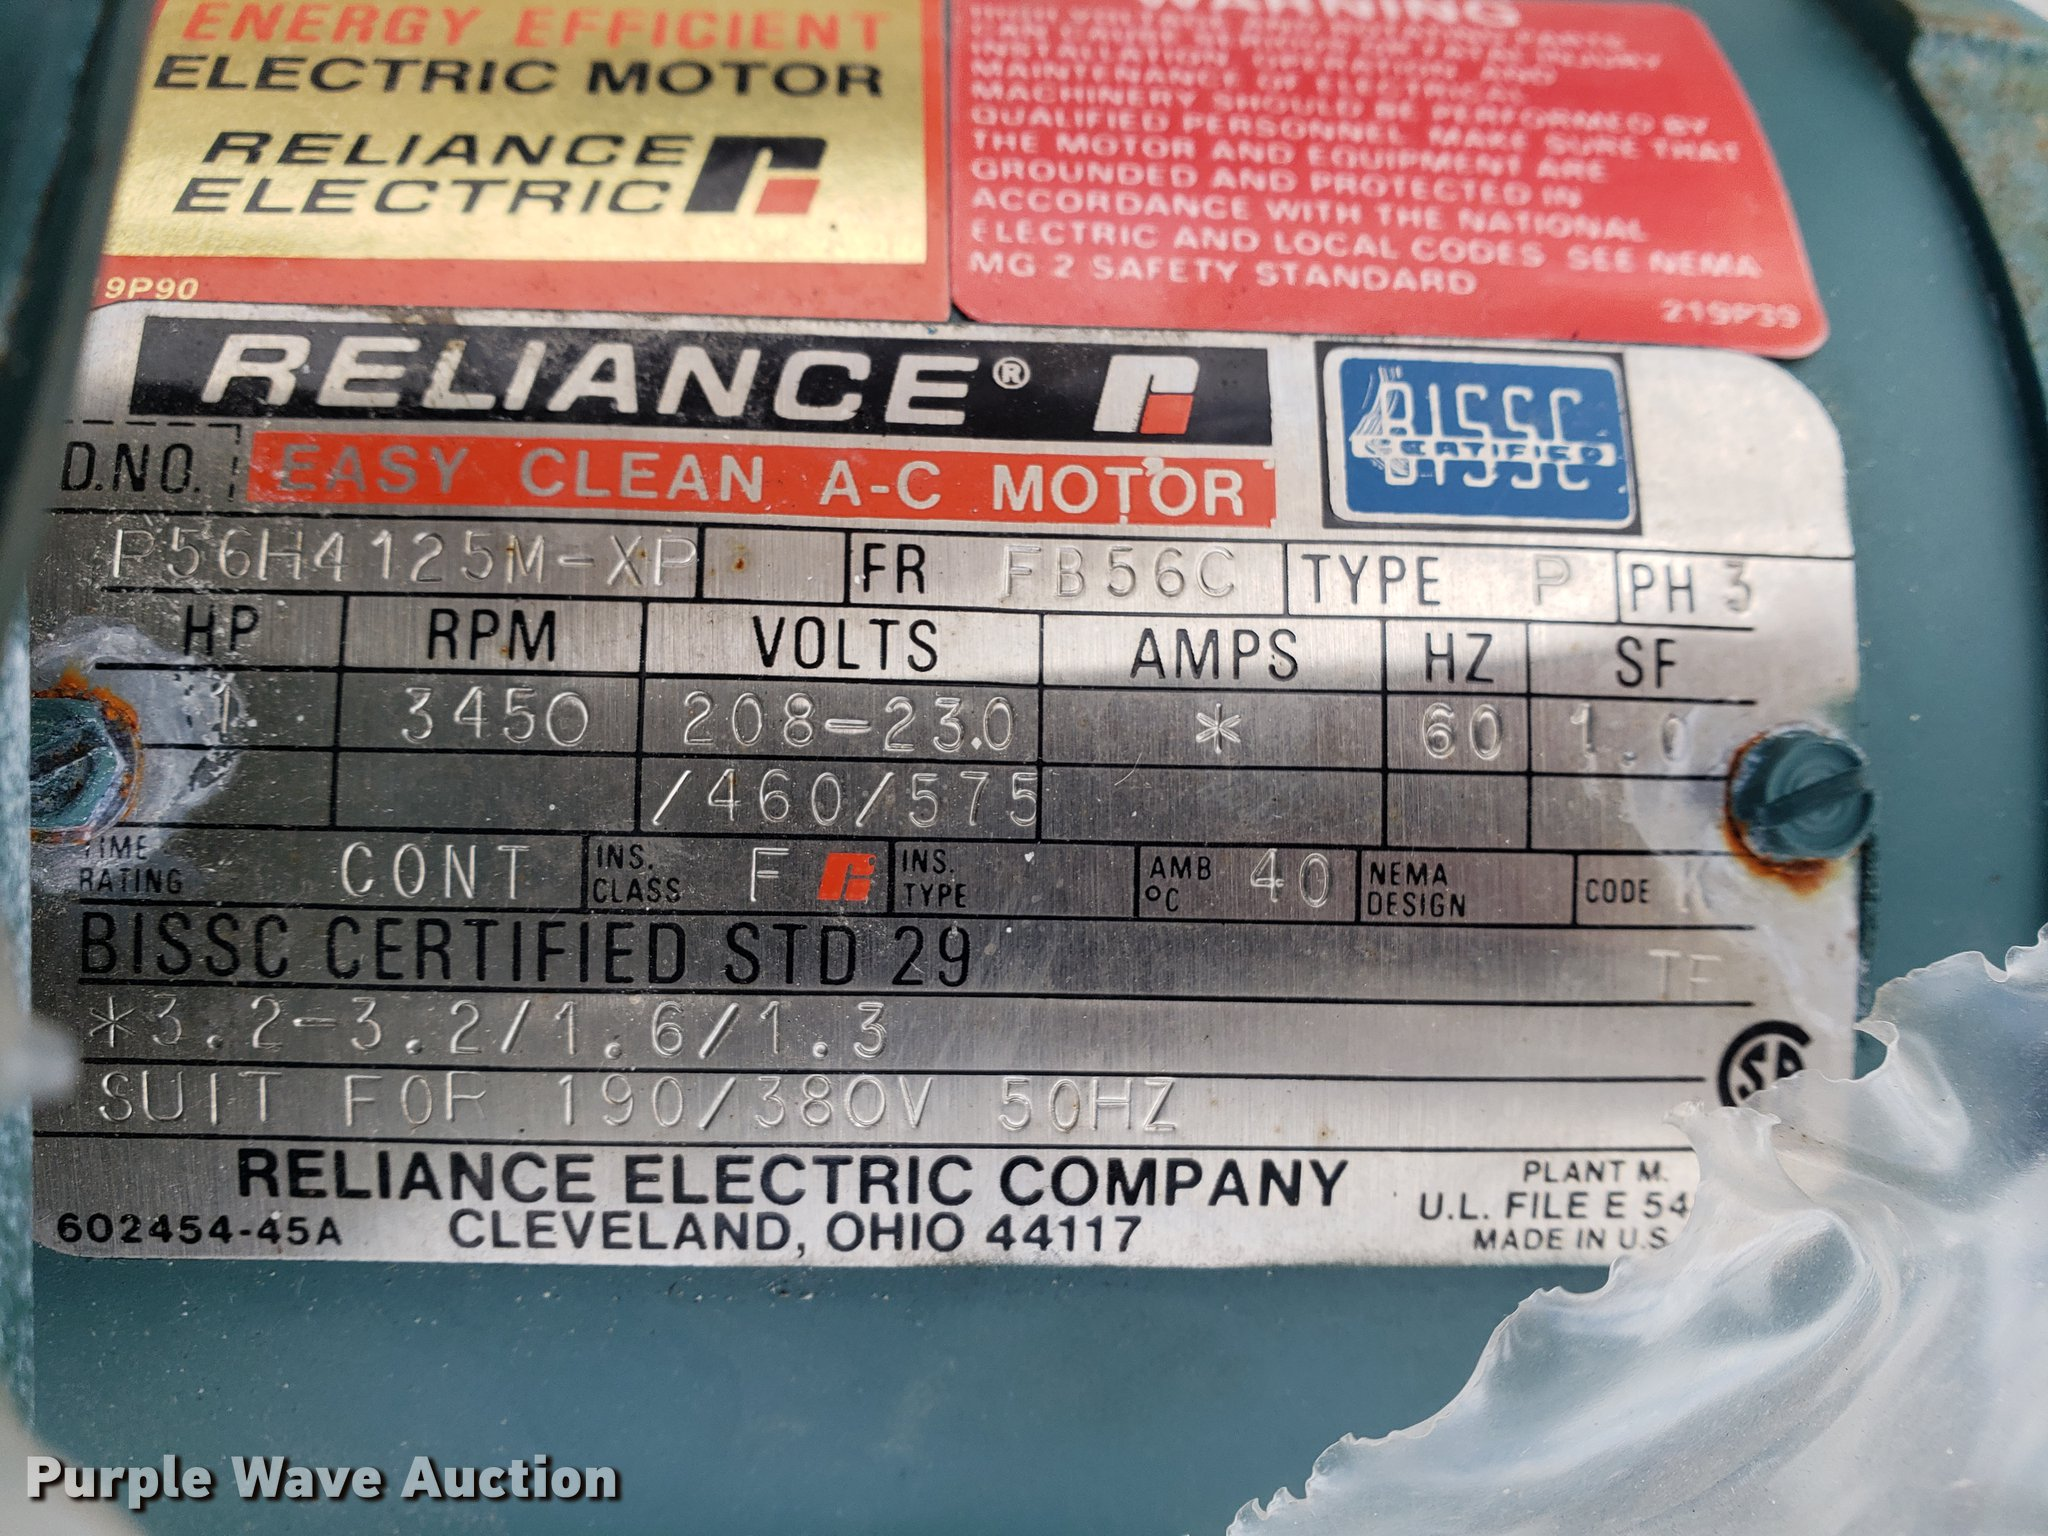 Reliance Electric Company Cleveland Ohio